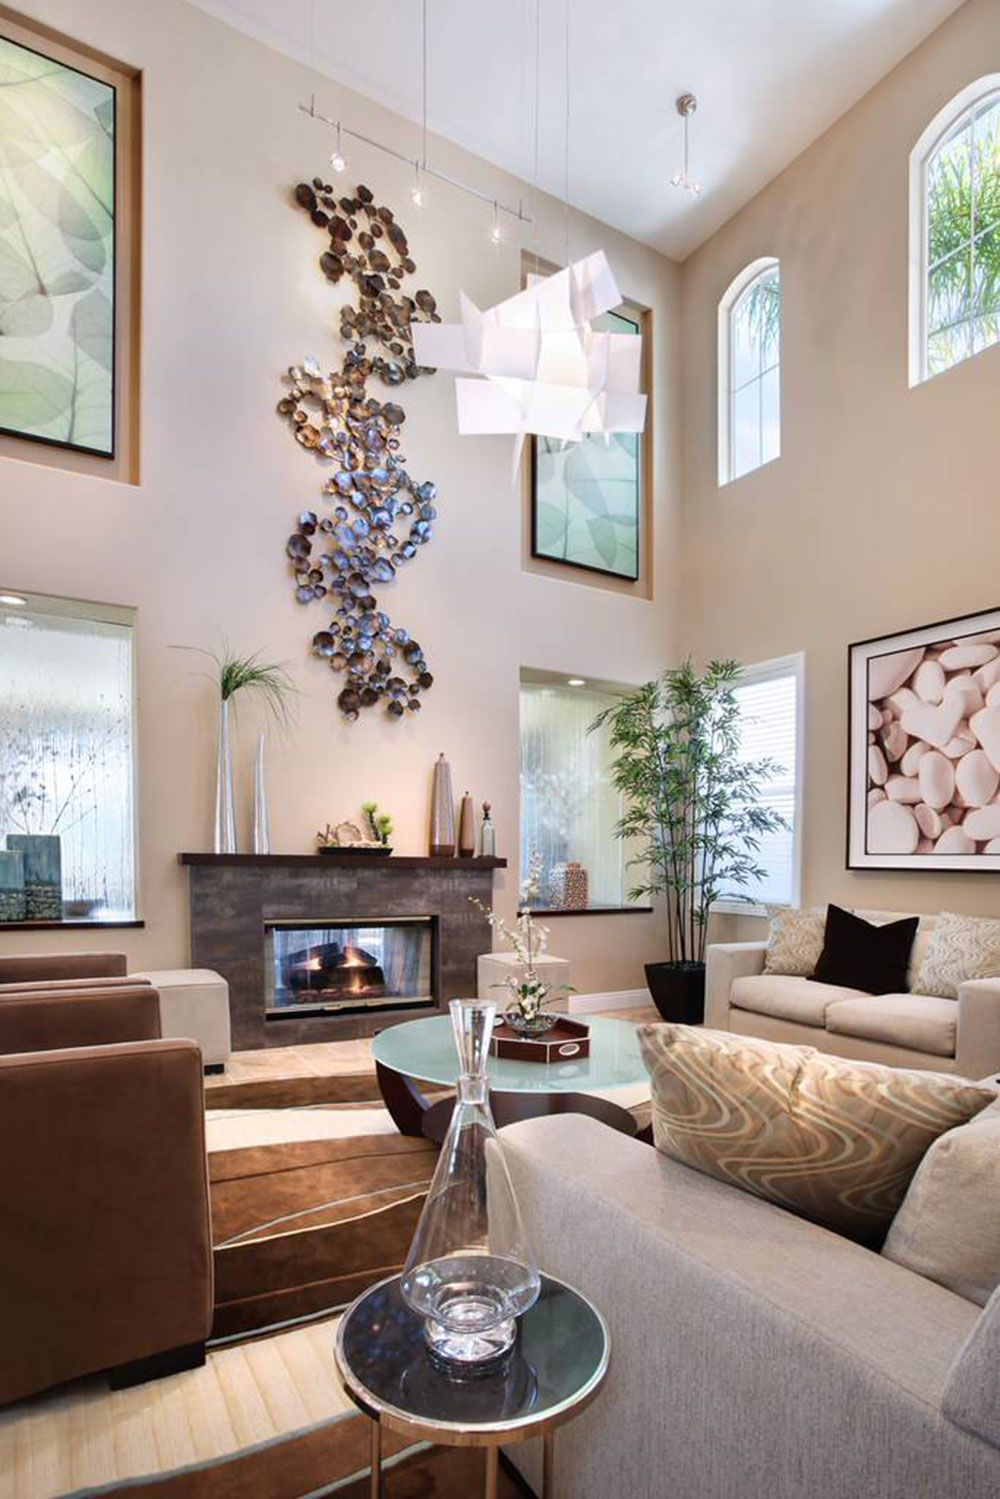 High Ceiling Rooms And Decorating Ideas For Them High Ceiling Living Room Wall Decor Living Room Large Living Room